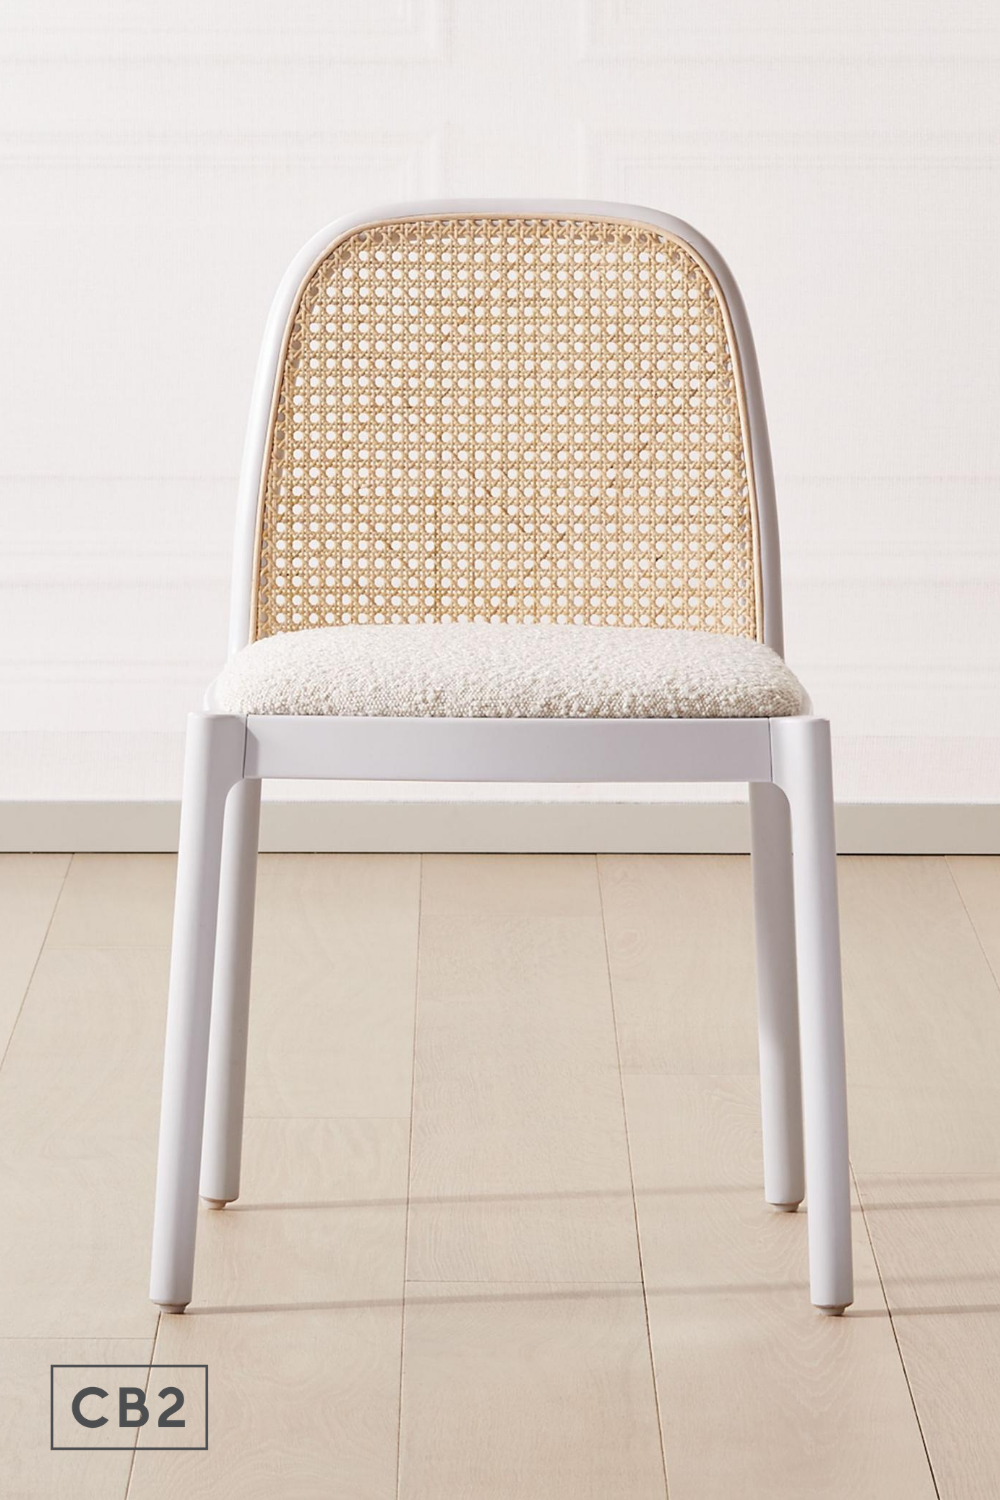 Nadia White Cane Chair Reviews Cb2 In 2020 Cane Chair Dining Room Contemporary Chair